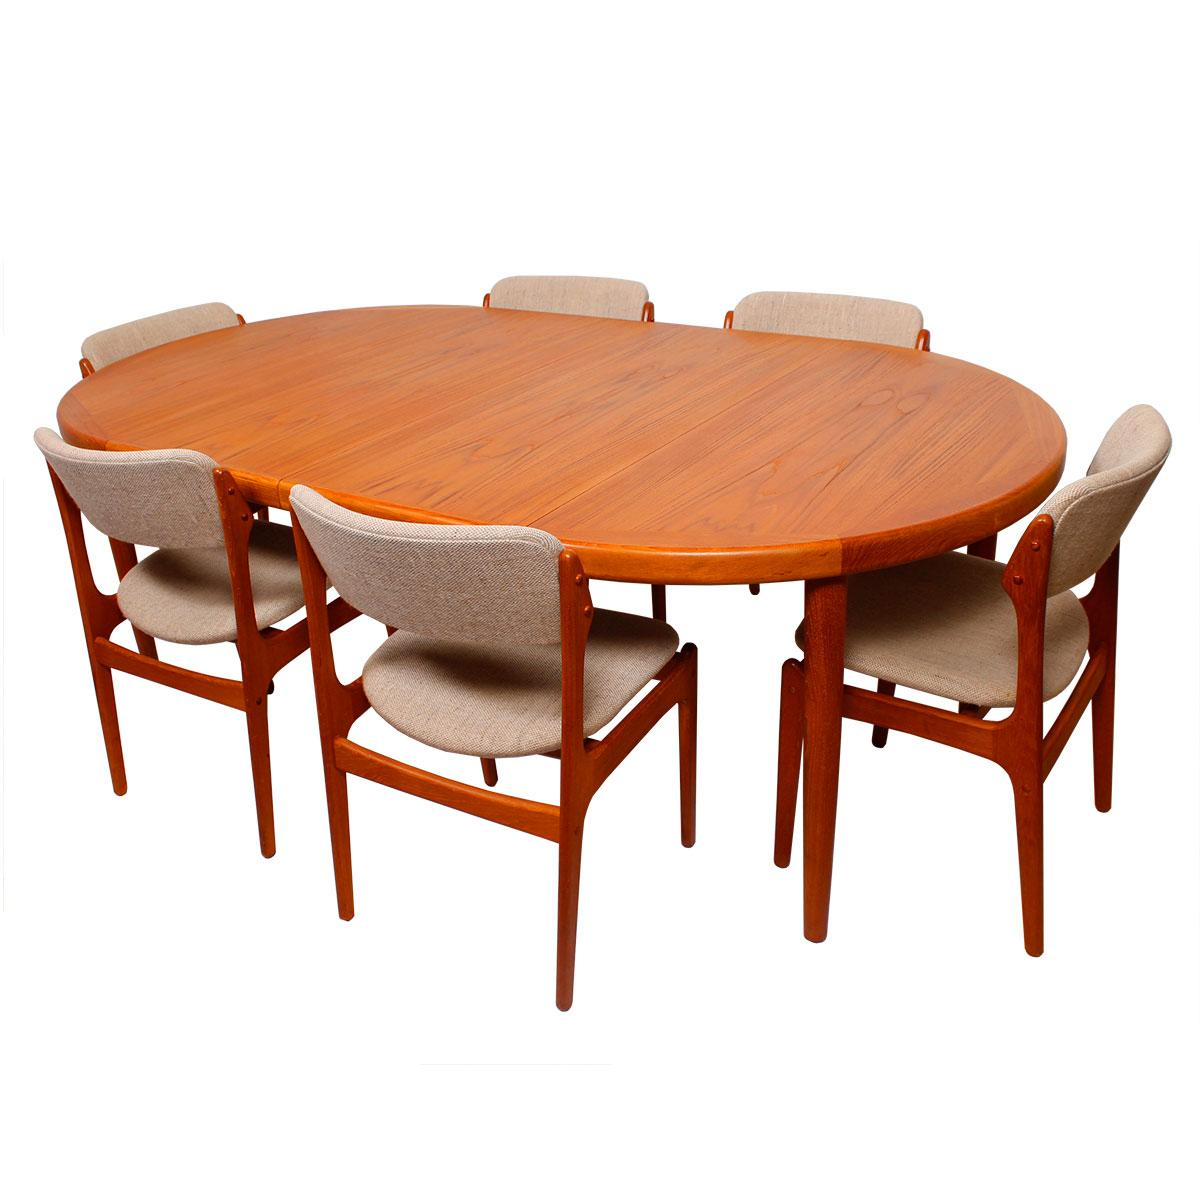 Danish Teak RoundOval Dining Table amp Pads Chairish : 6de60826 6000 4aa0 9ff5 c31d3911597aaspectfitampwidth640ampheight640 from www.chairish.com size 640 x 640 jpeg 39kB